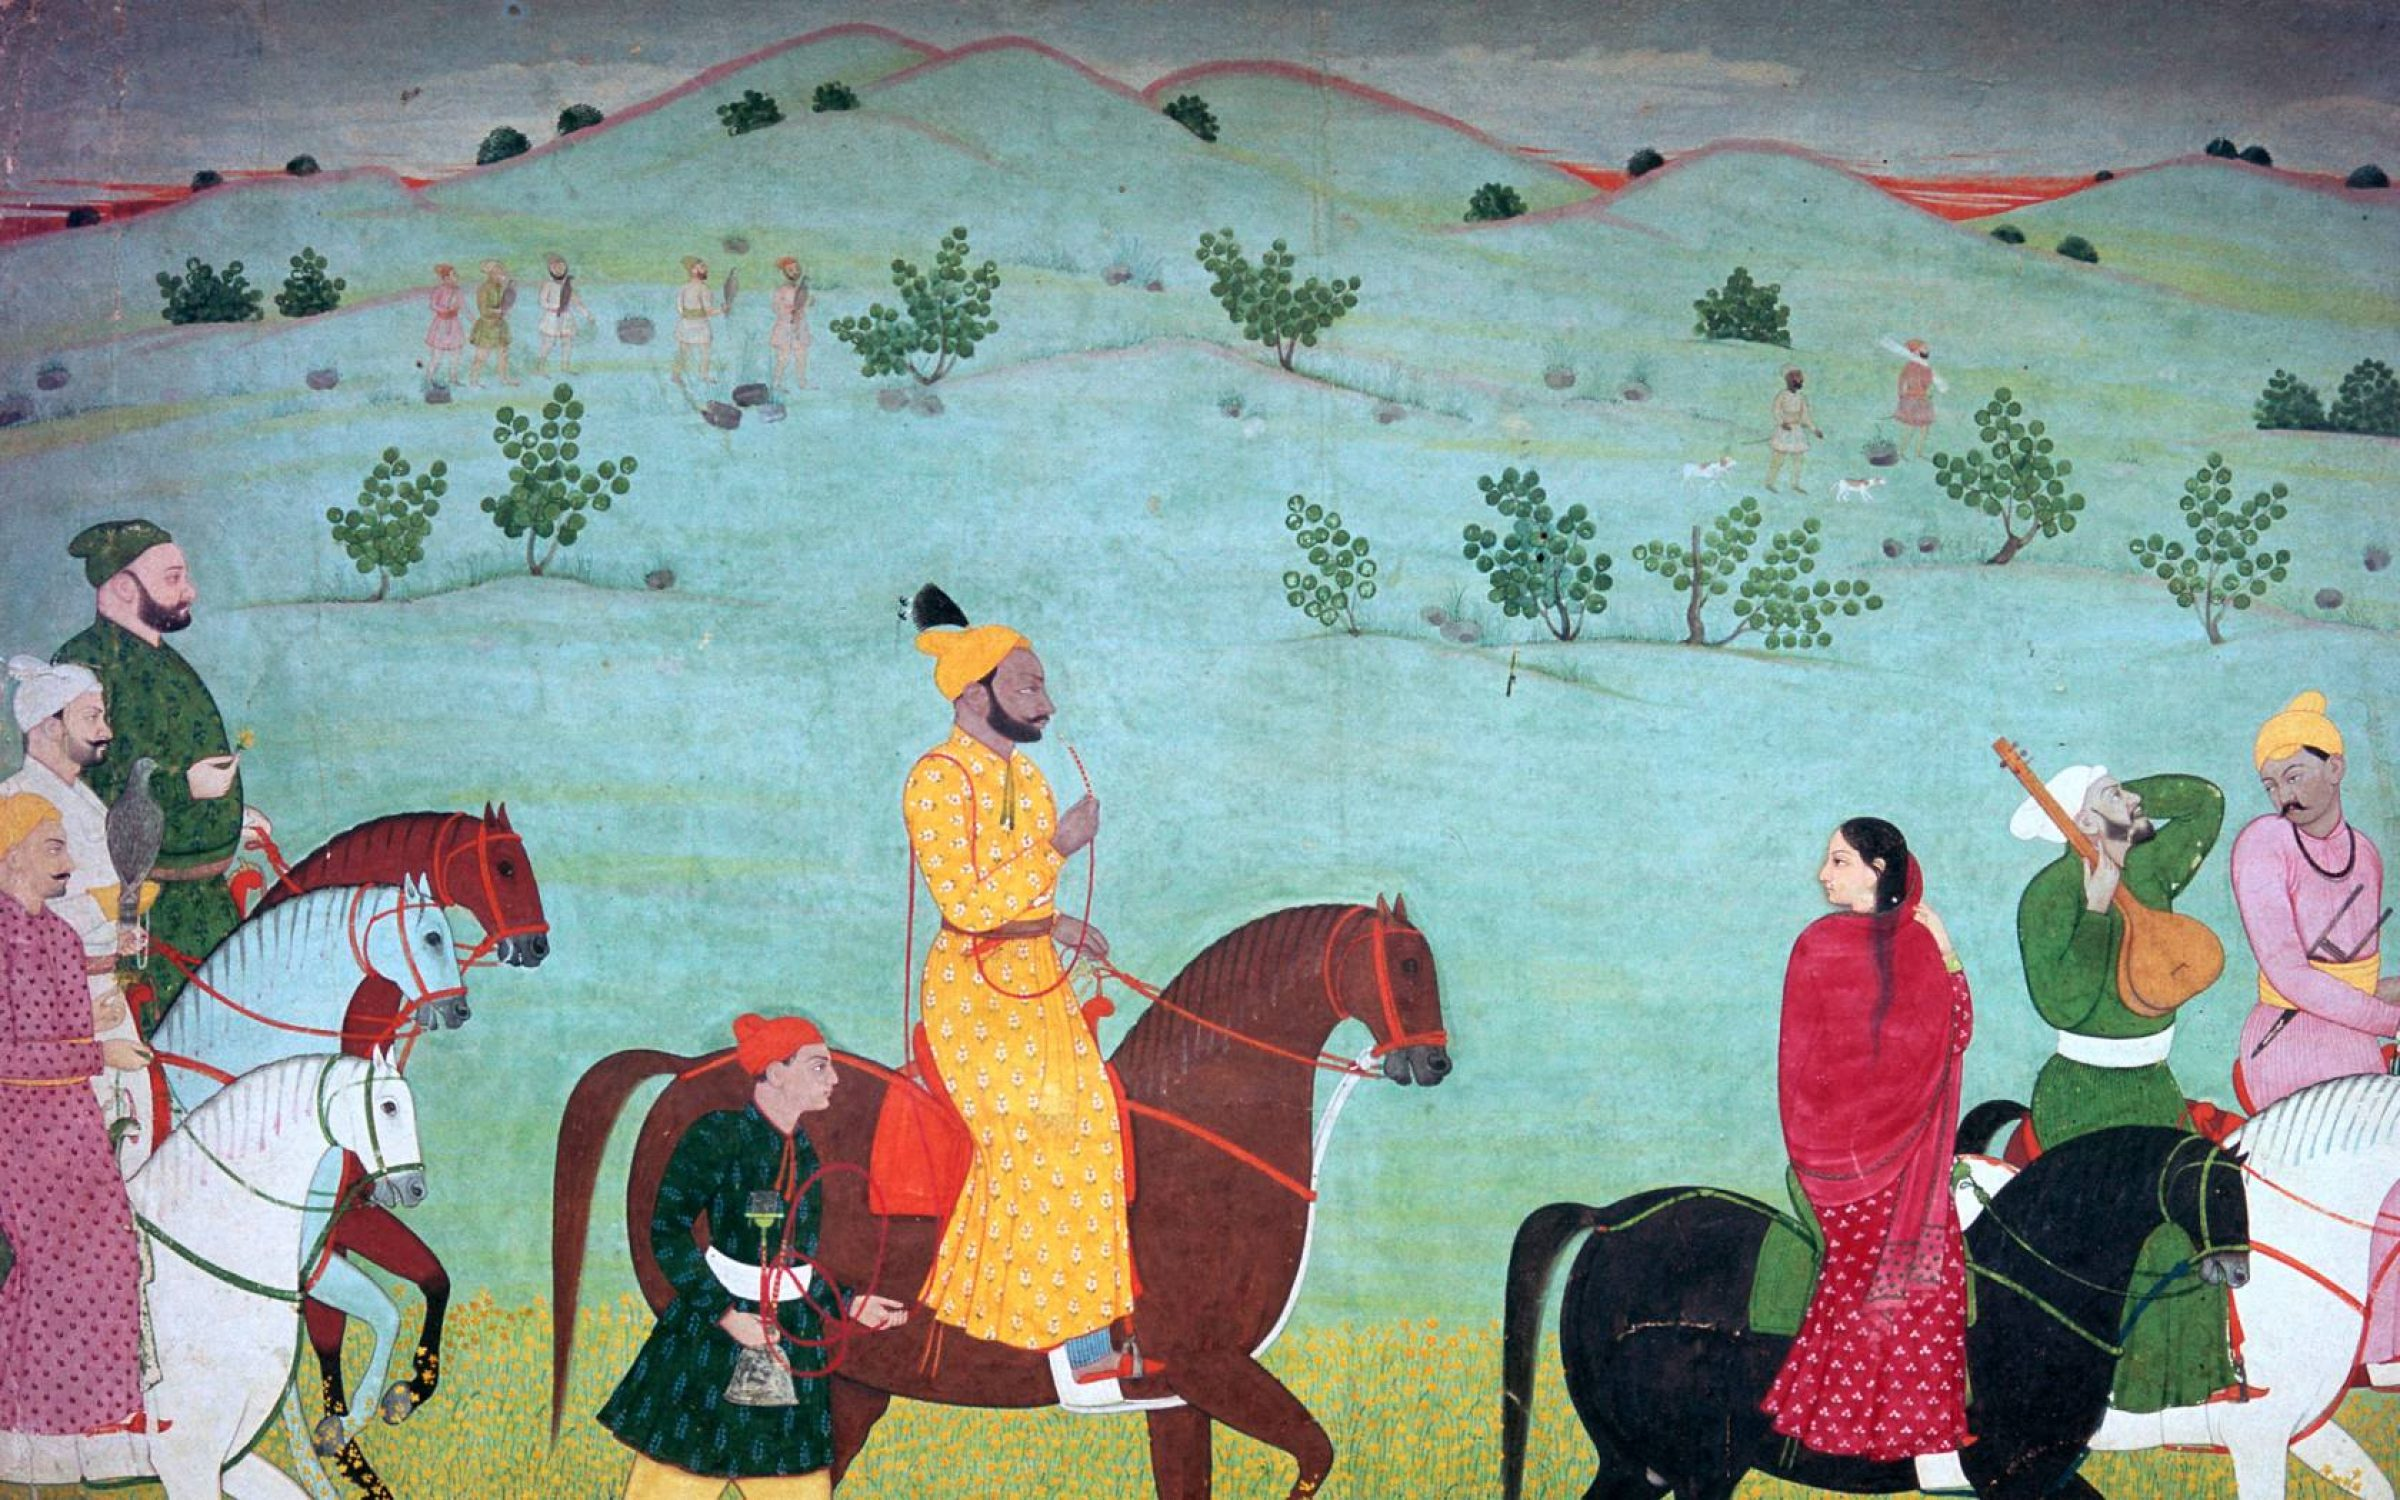 Painting of Mian Mukund Dev of Jasrota, 18th century. Credit: CM Dixon/Print Collector/Getty Images